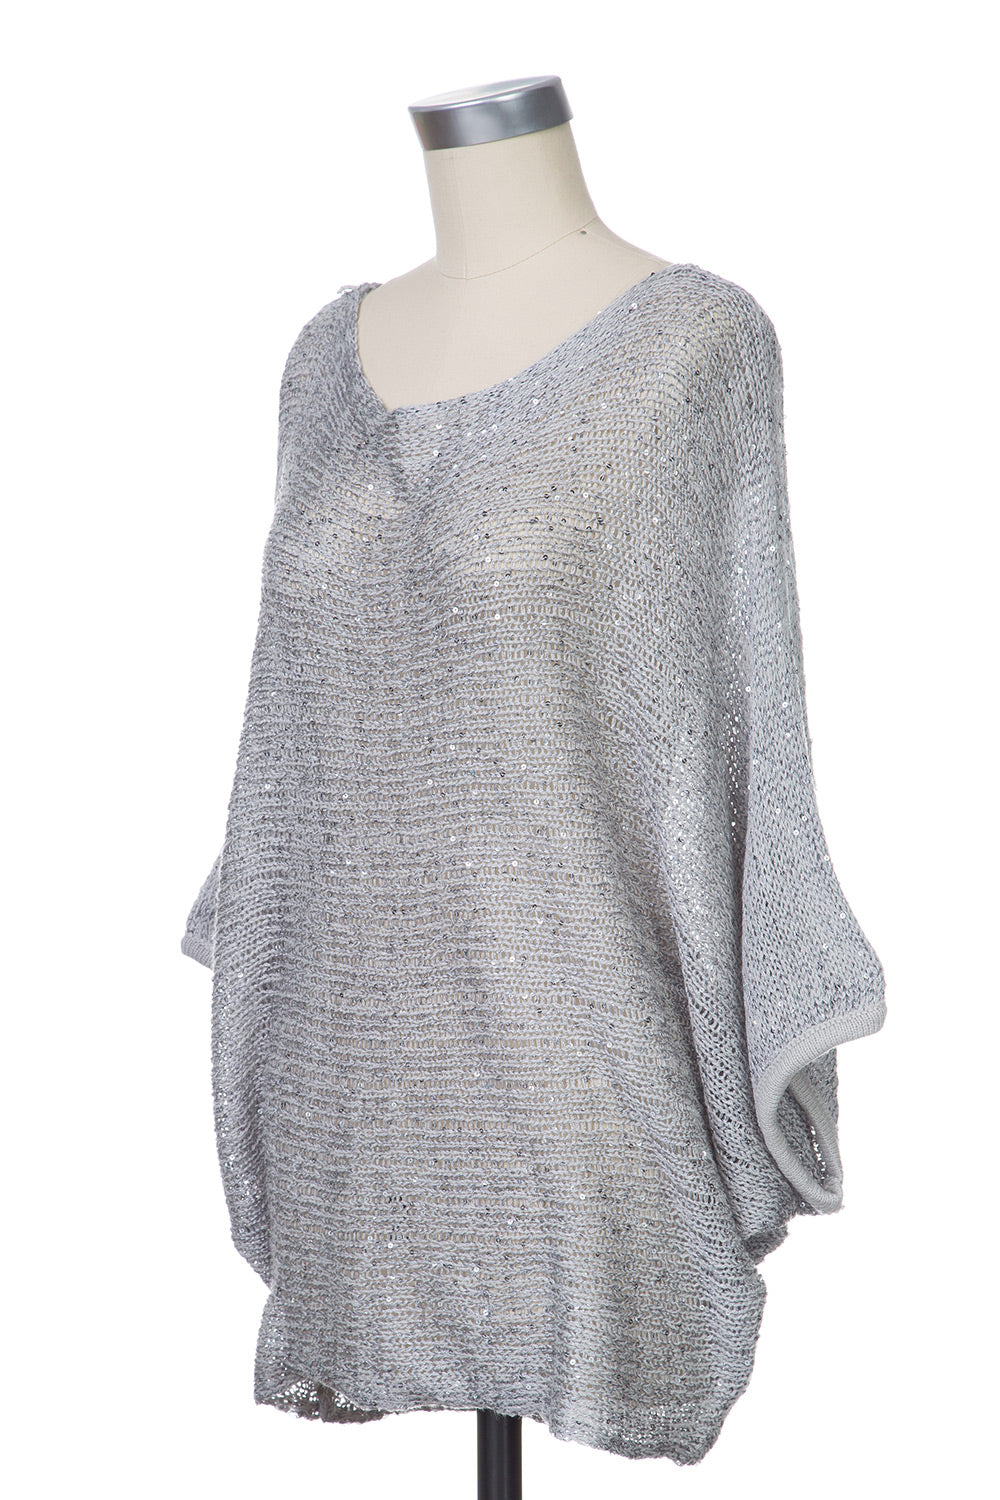 Type 2 Breezy Sequins Sweater in Silver